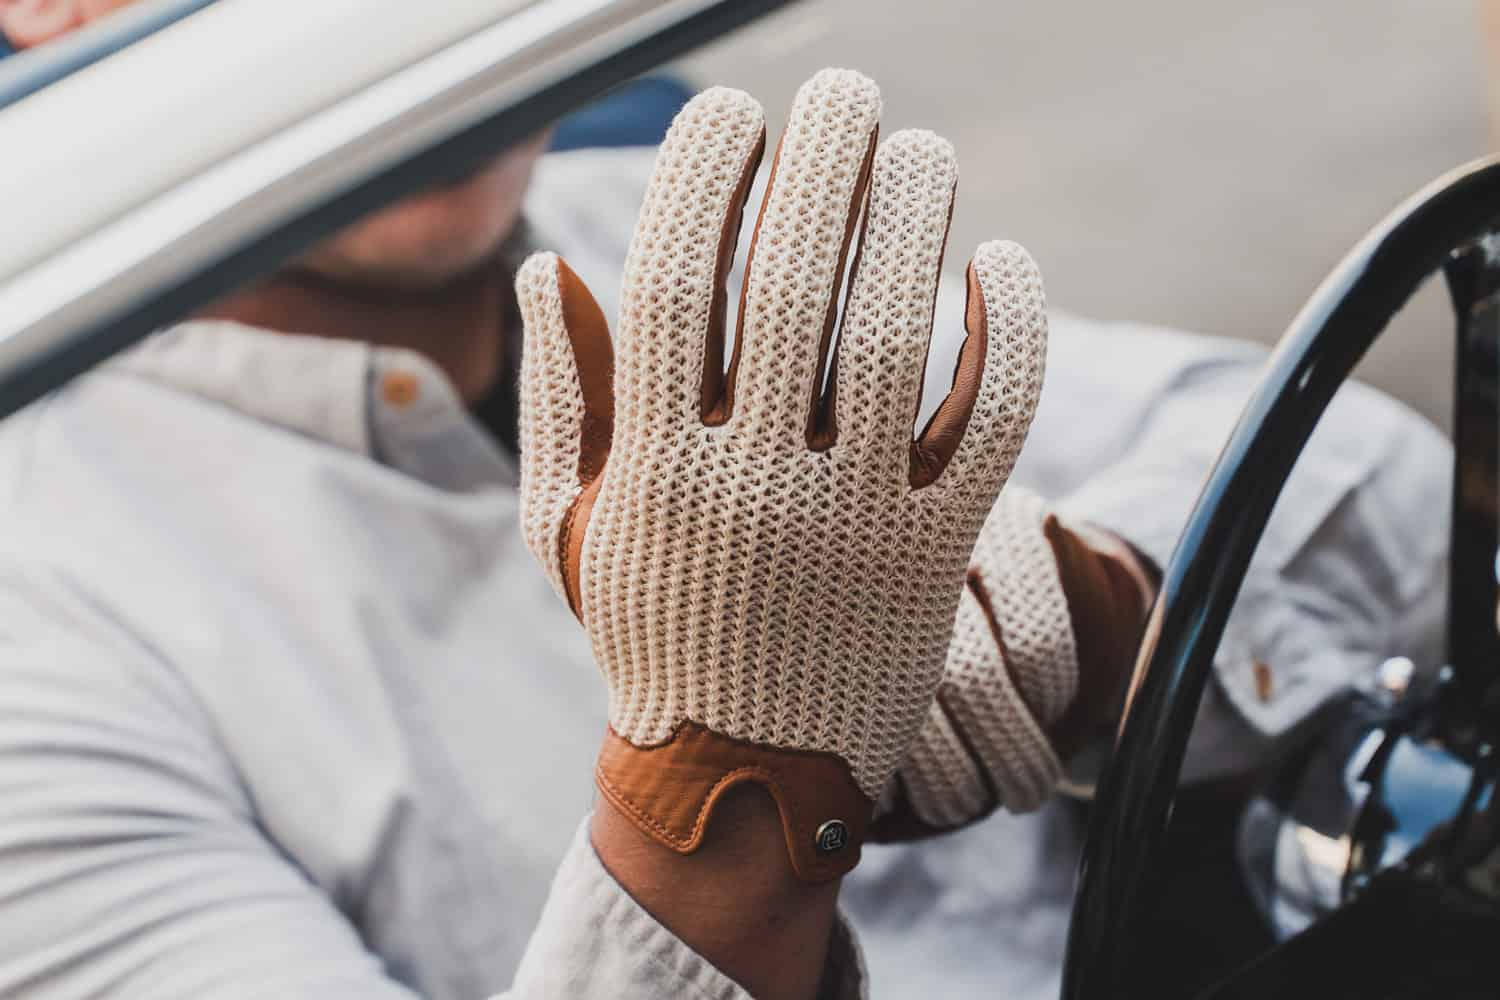 AutoDromo – Stringback Driving Gloves